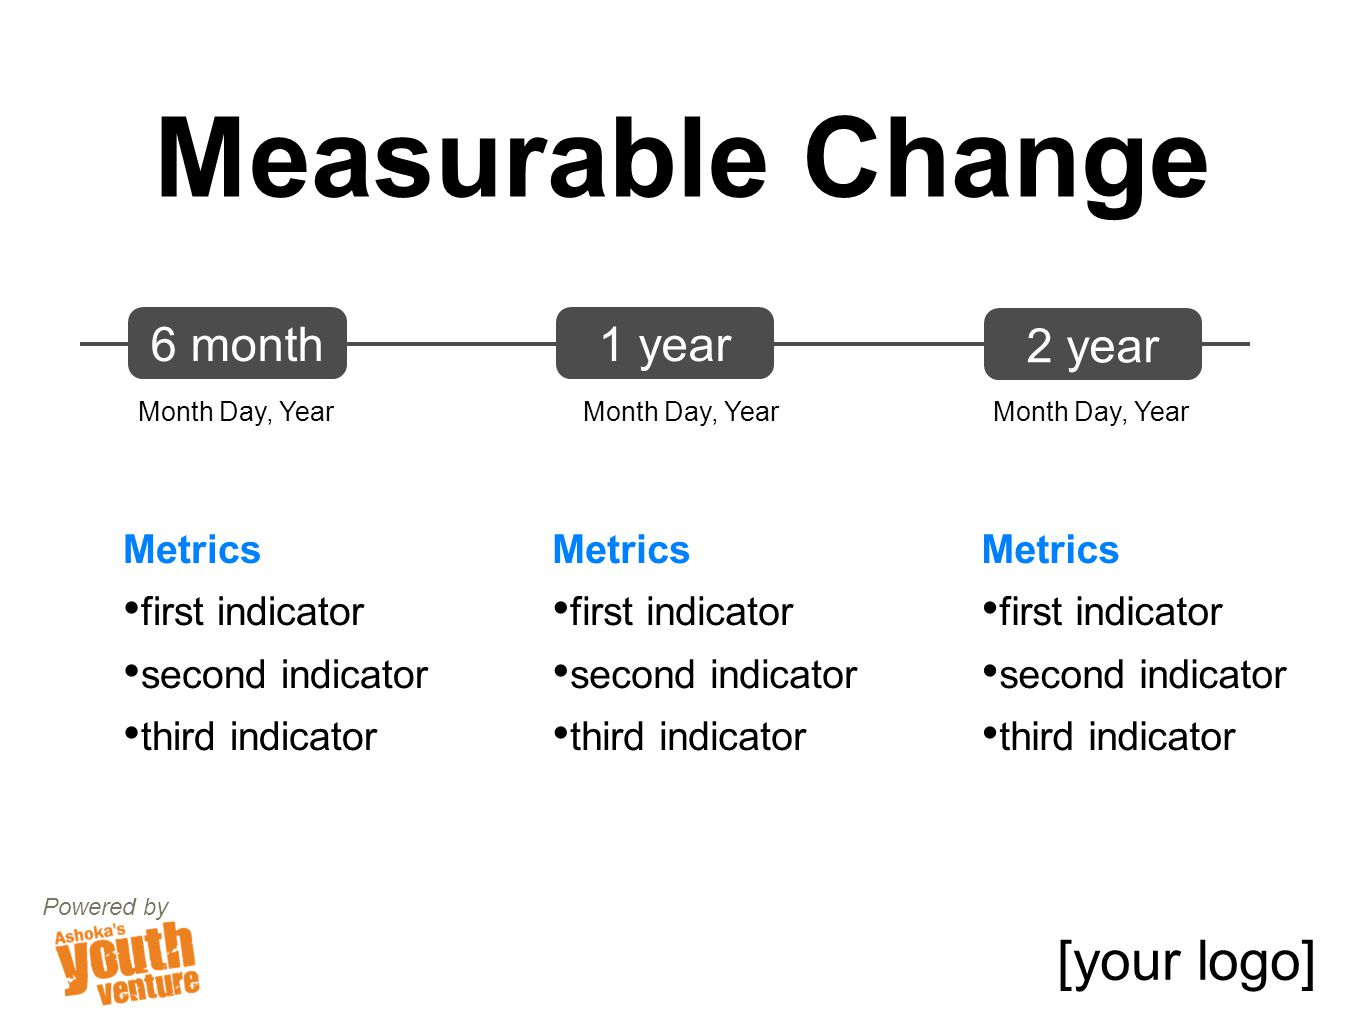 Measurable Change Powered by [your logo] Month Day, Year Metrics first indicator second indicator third indicator 6 month1 year 2 year Month Day, Year Metrics first indicator second indicator third indicator Metrics first indicator second indicator third indicator